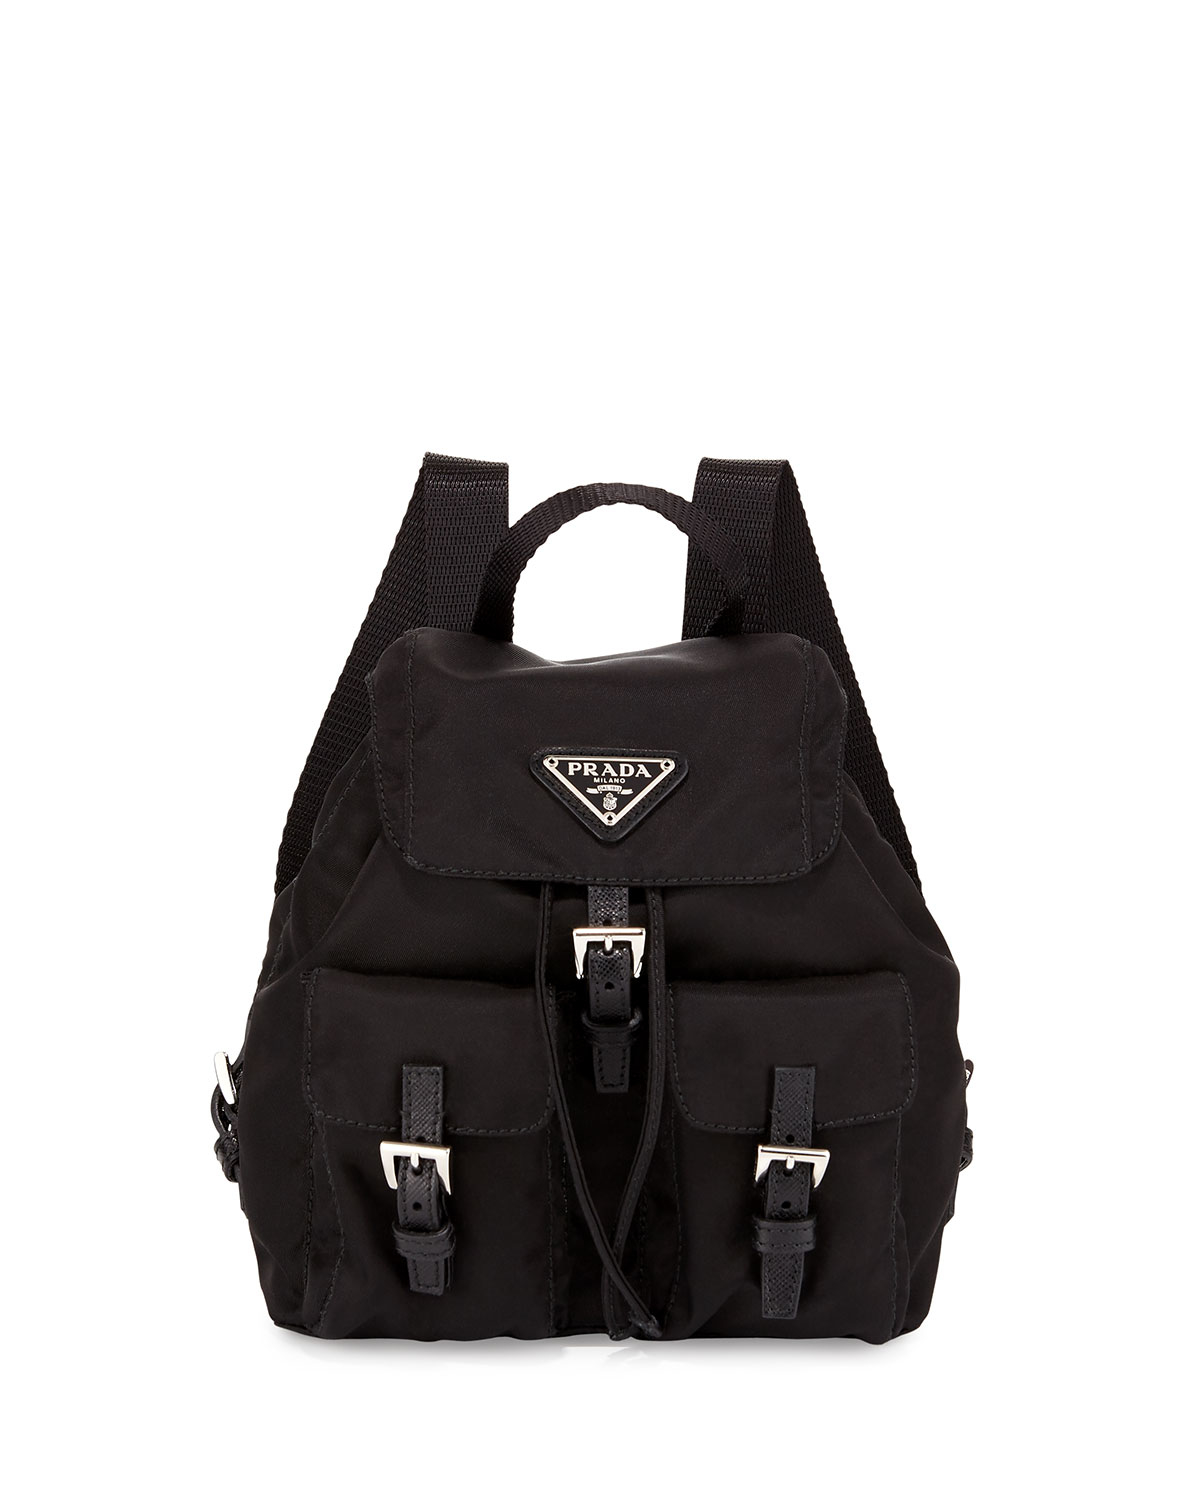 ac4b459925f6b5 Prada Vela Nylon Crossbody Backpack in Black - Lyst